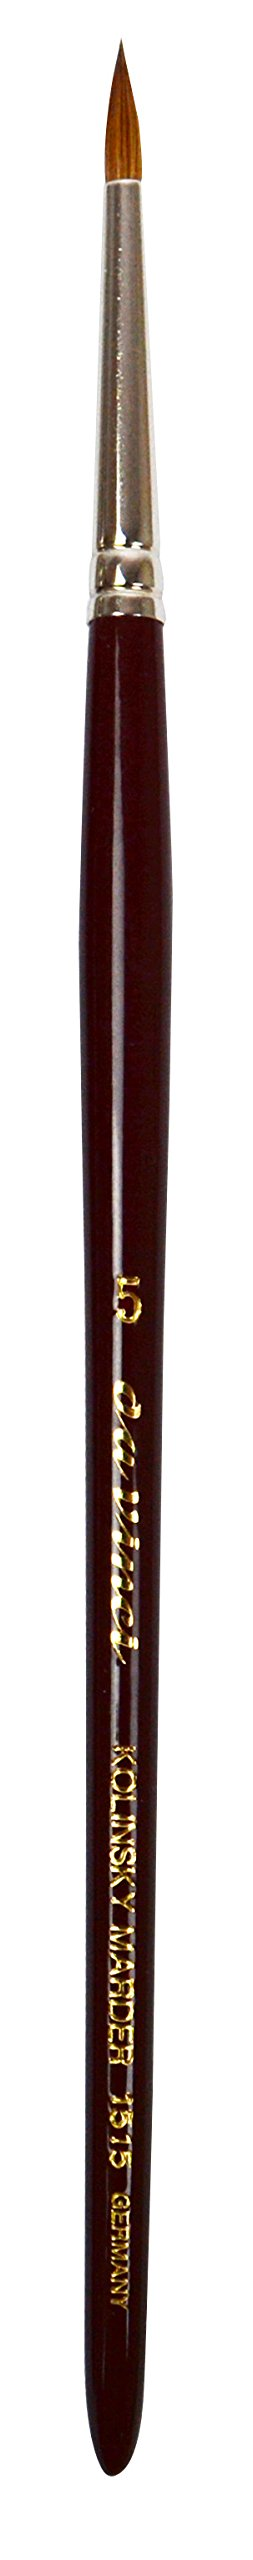 da Vinci Watercolor Series 1515 Maestro Paint Brush, Extra Short Retouching Kolinsky Red Sable, Size 5/0 (1515-5/0)